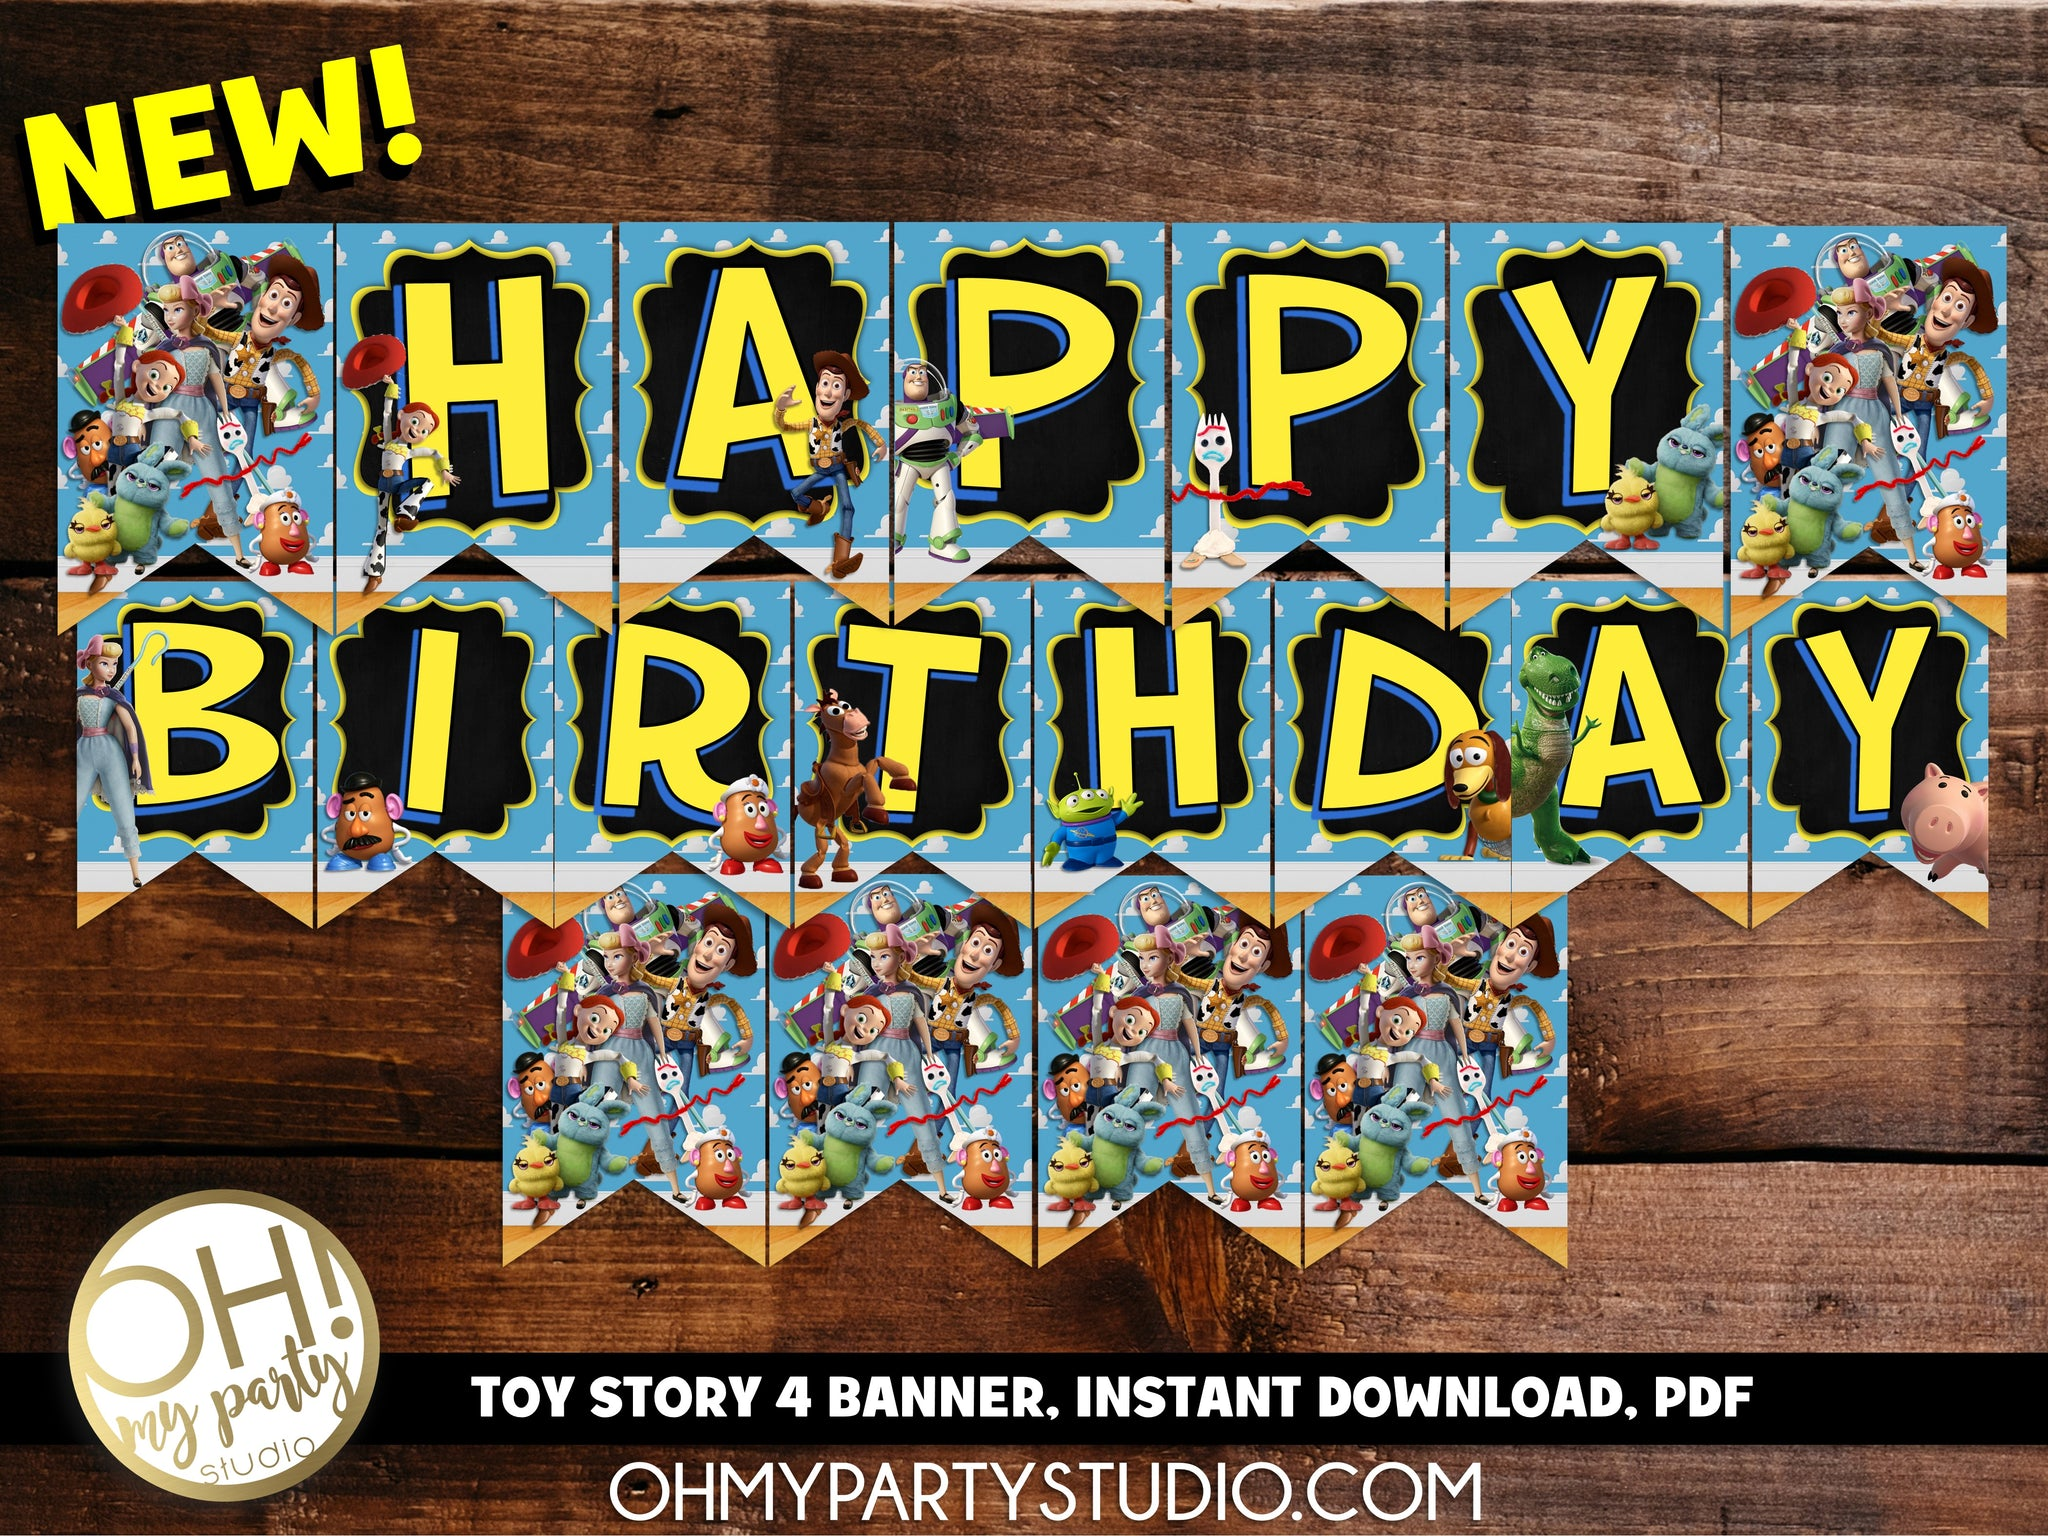 TOY STORY 4 BANNER, TOY STORY 4 INVITATION, TOY STORY 4 INVITATIONS, TOY STORY 4 PARTY, TOY STORY 4 BIRTHDAY, TOY STORY 4 PARTY PRINTABLES, TOY STORY 4 BIRTHDAY PARTY, TOY STORY 4 DECORATIONS, TOY STORY 4